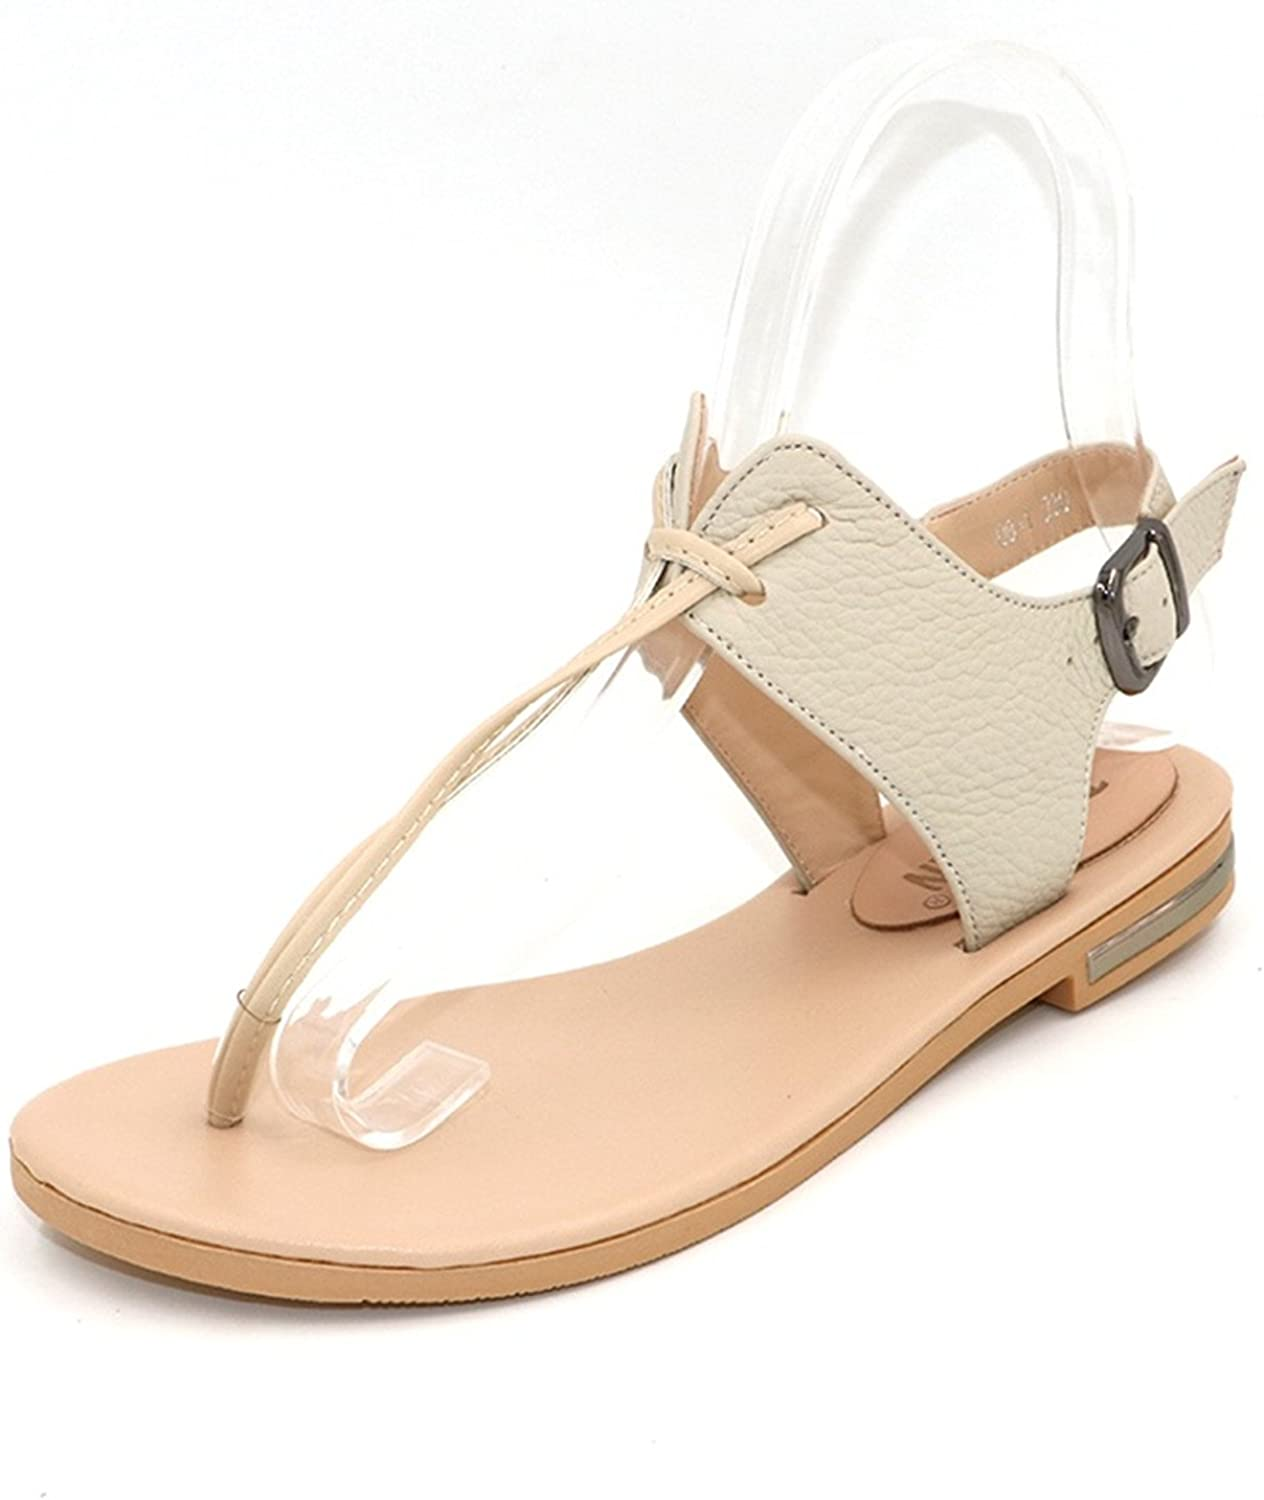 Greuses Women's Real Natural Genuine Leather Flat Sandals Bohemia Slippers Summer Beach Sandals Ladies shoes Size 34-43 R5744